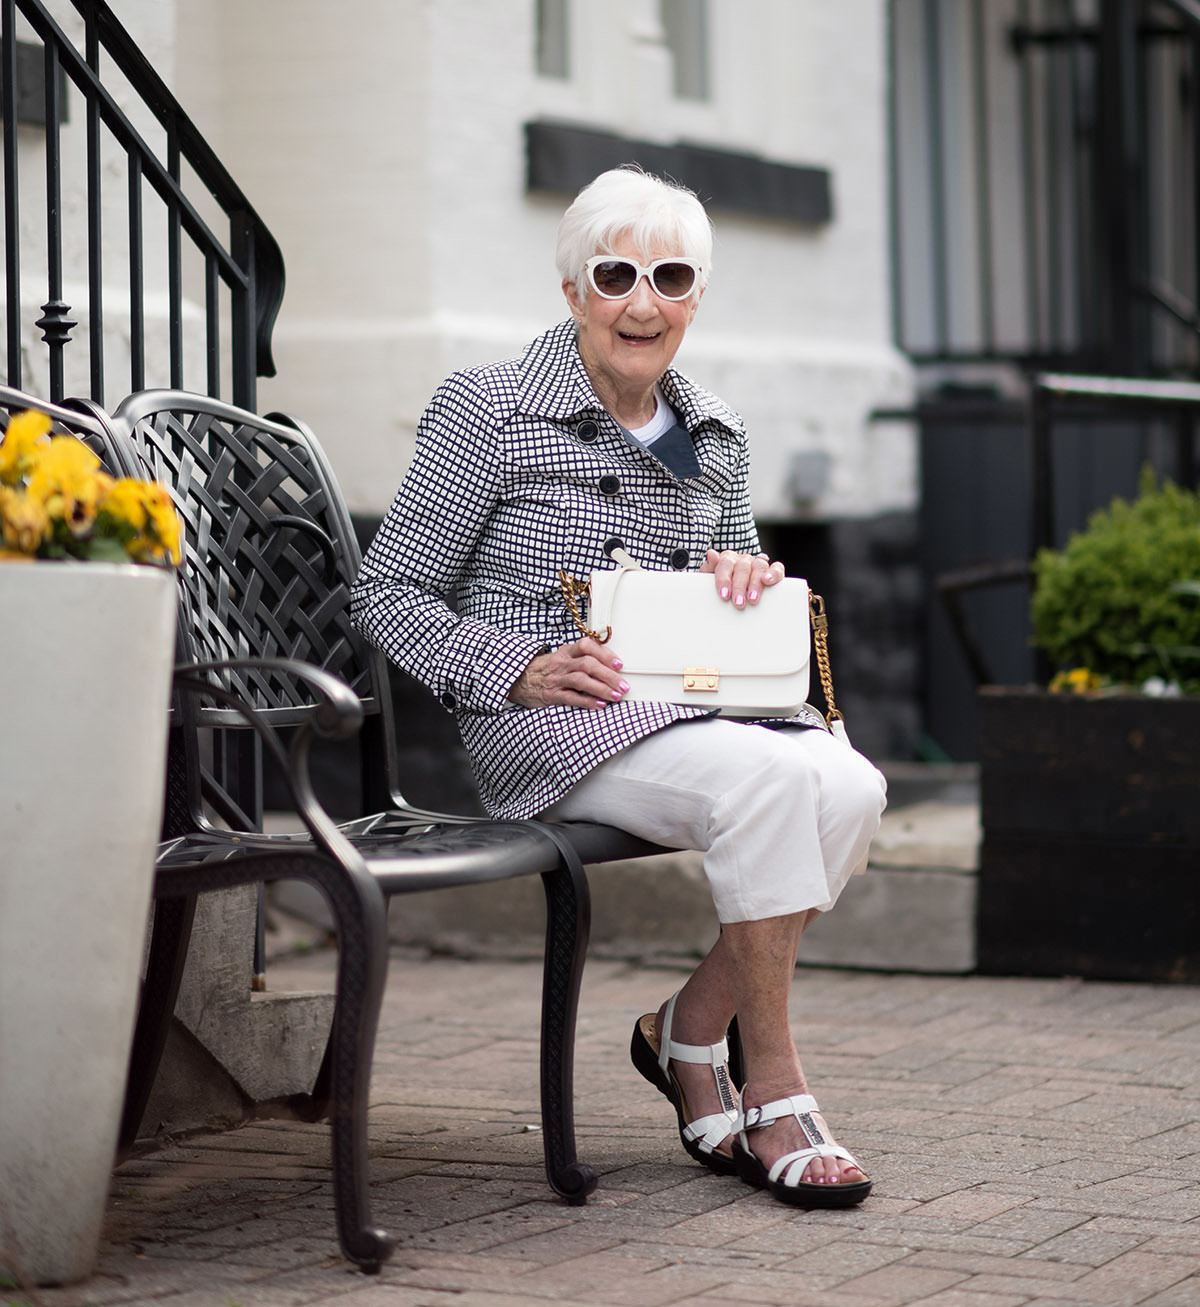 old woman sitting on bench modelling a purse